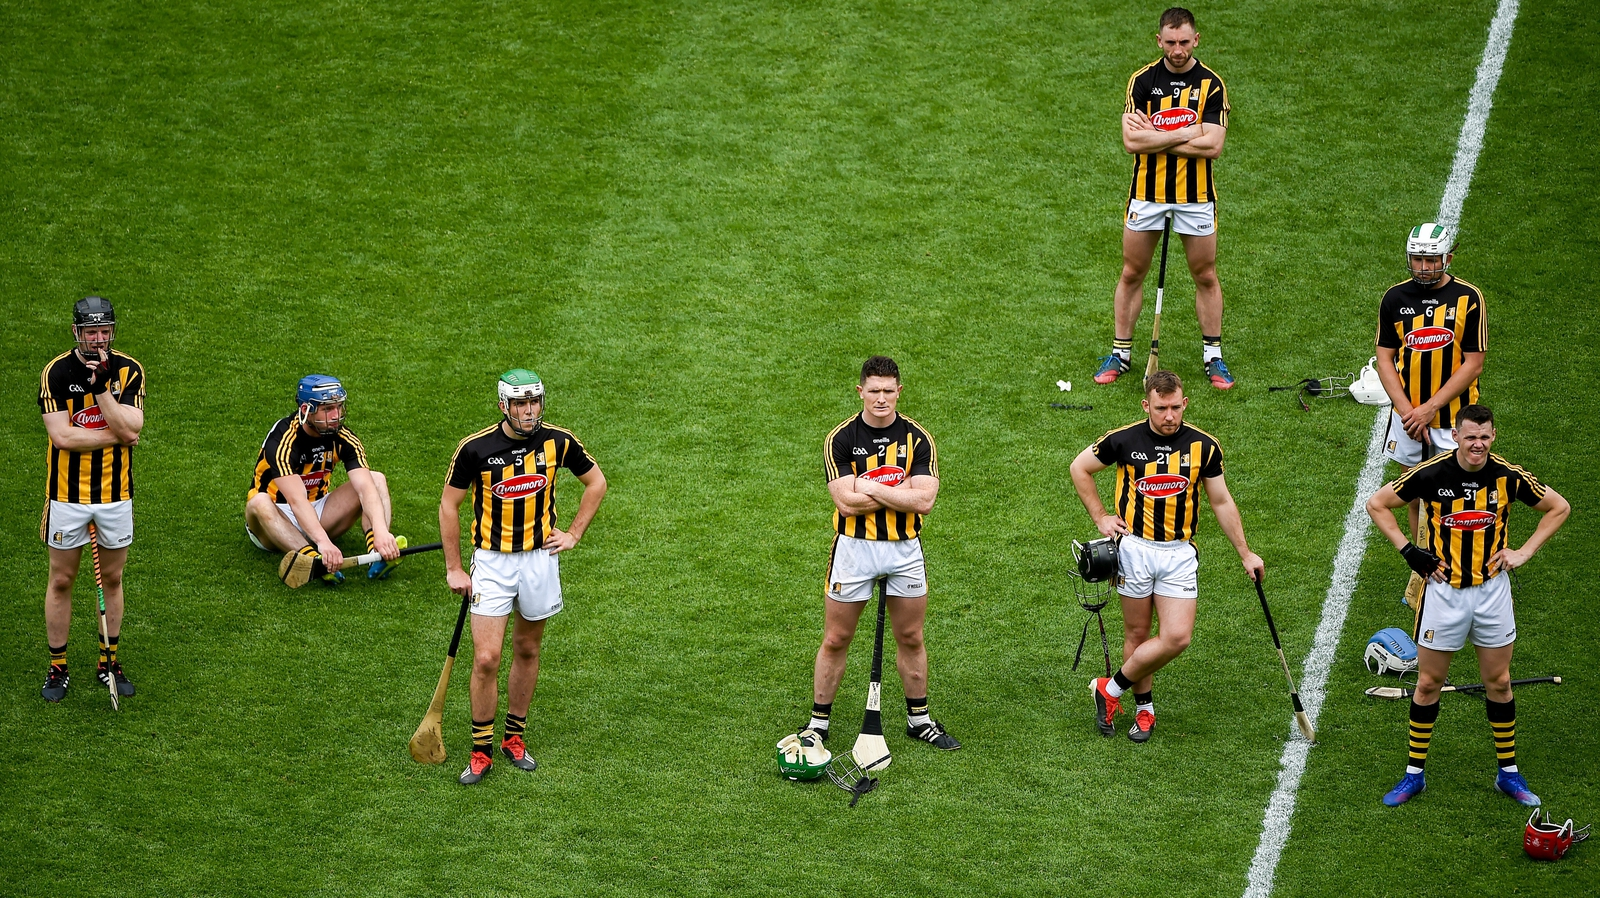 Image - Kilkenny players after the Leinster final